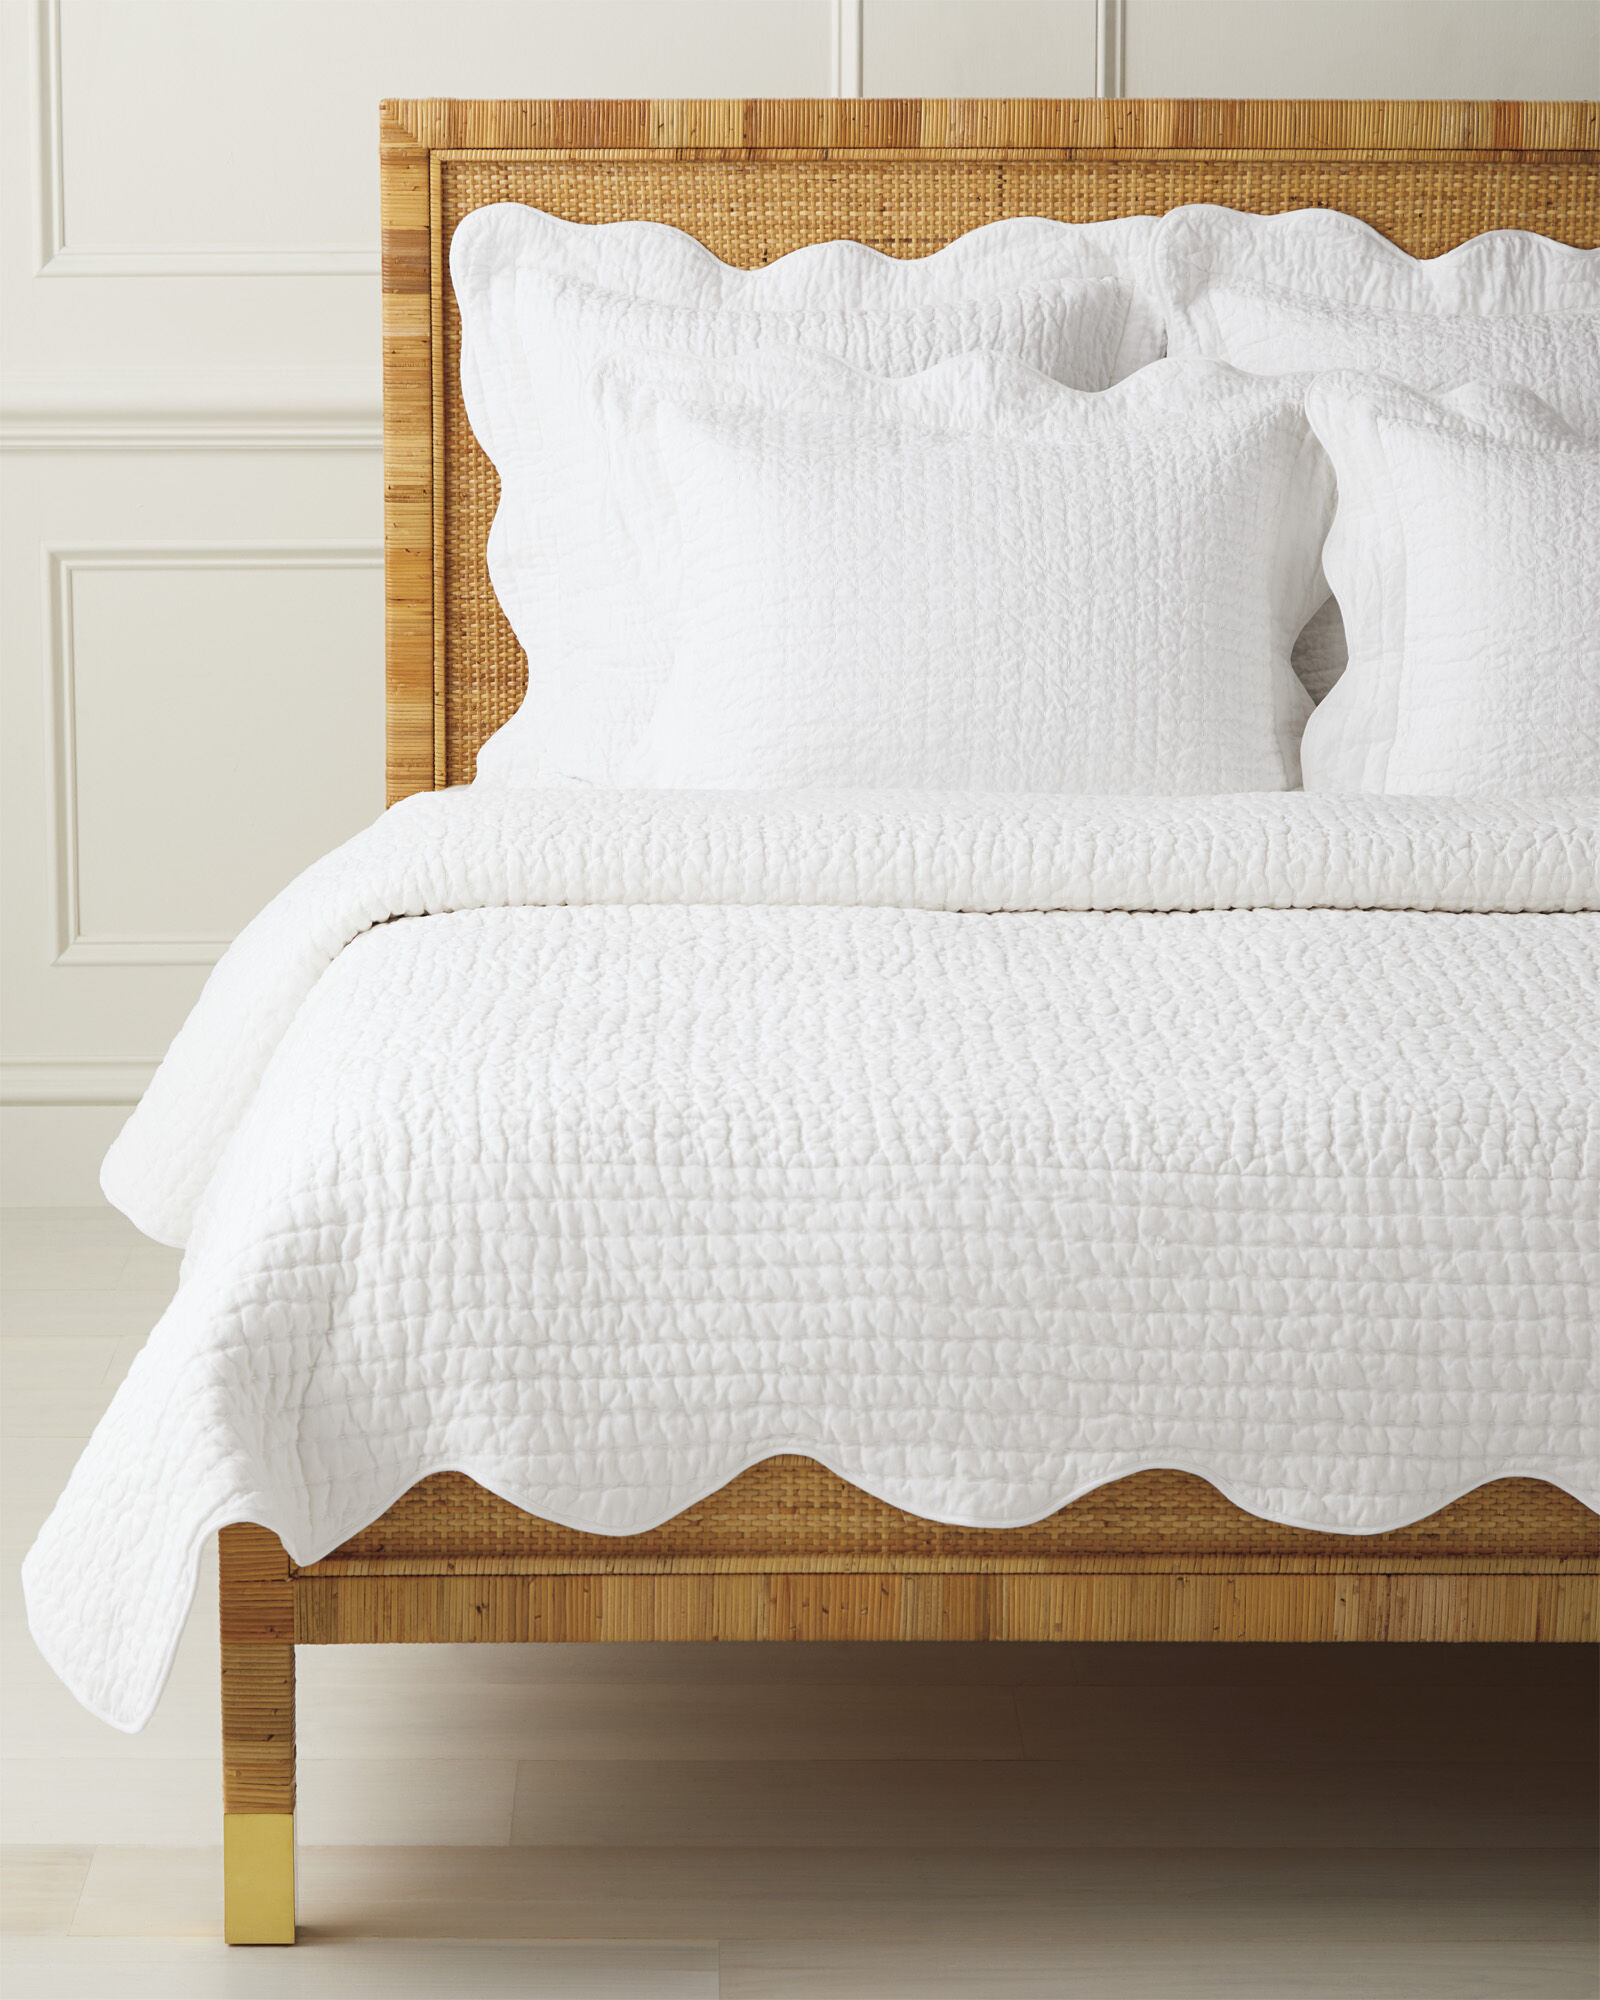 Baywood Quilt and Scallop Sheet Set Bundle, White